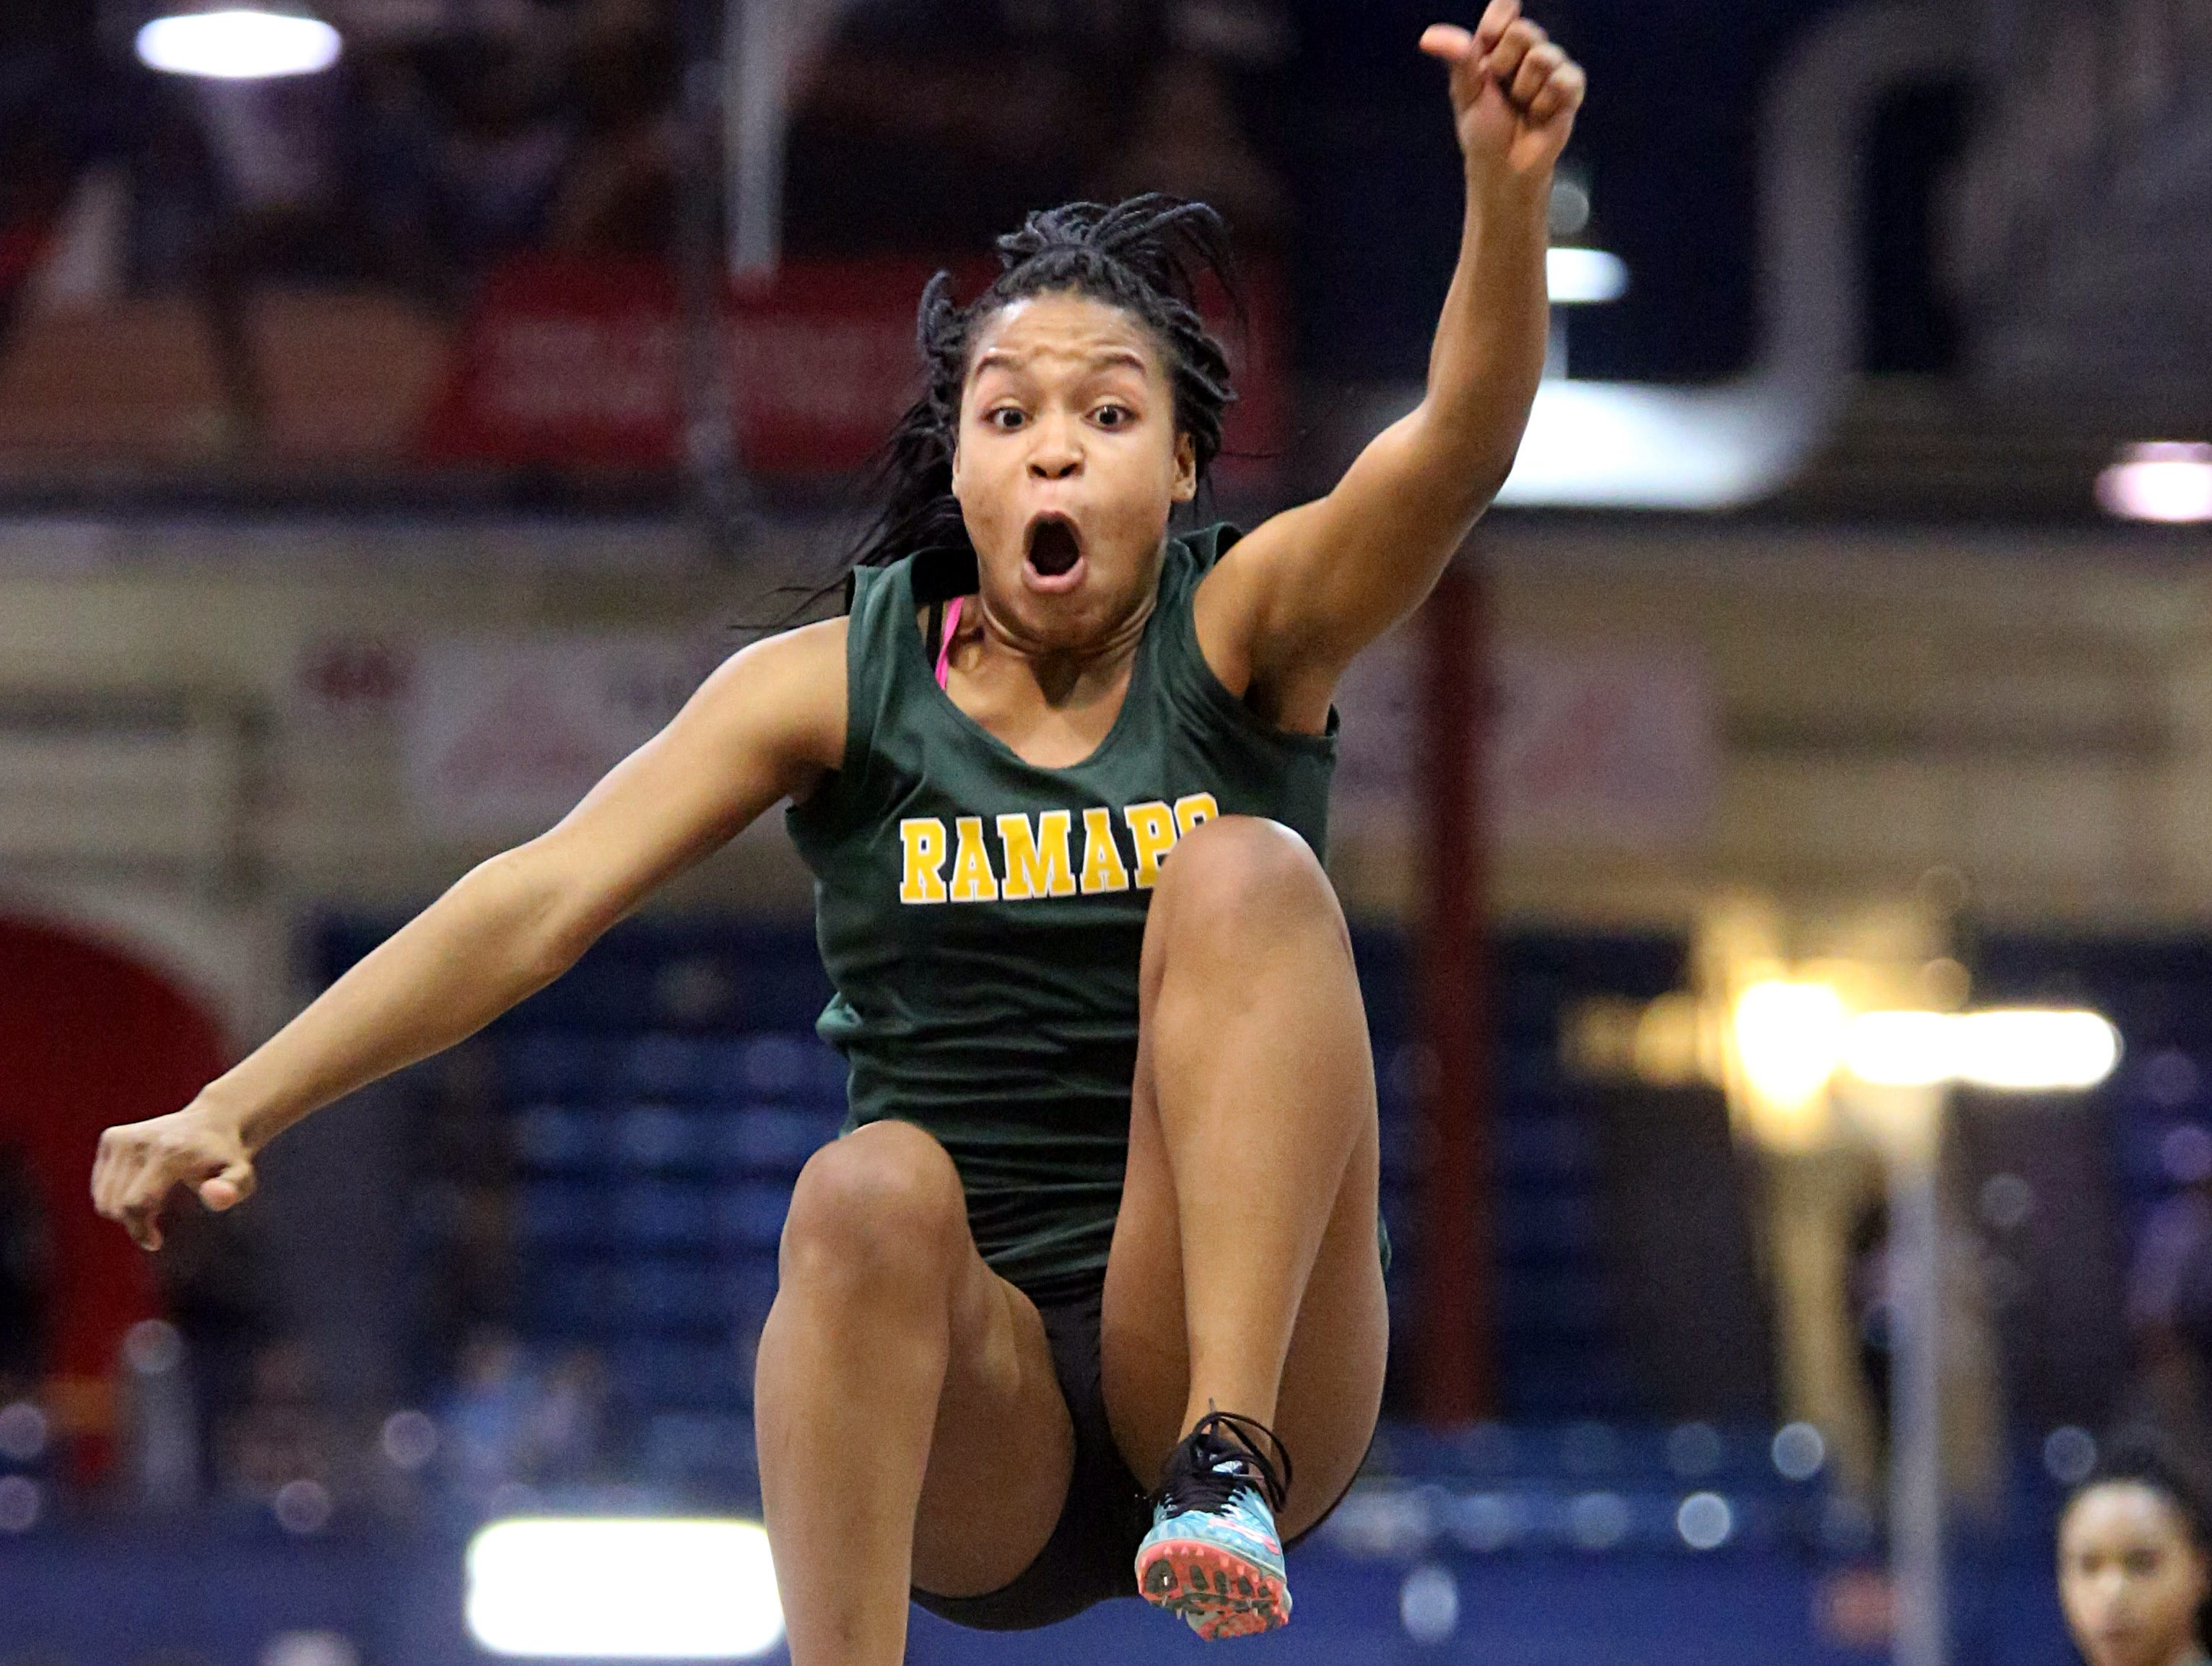 Rampo's Wilkilandjie Marseille competes in the long jump during Section 1 State Track and Field Qualifier at The Armory in Manhattan Feb. 21, 2018.